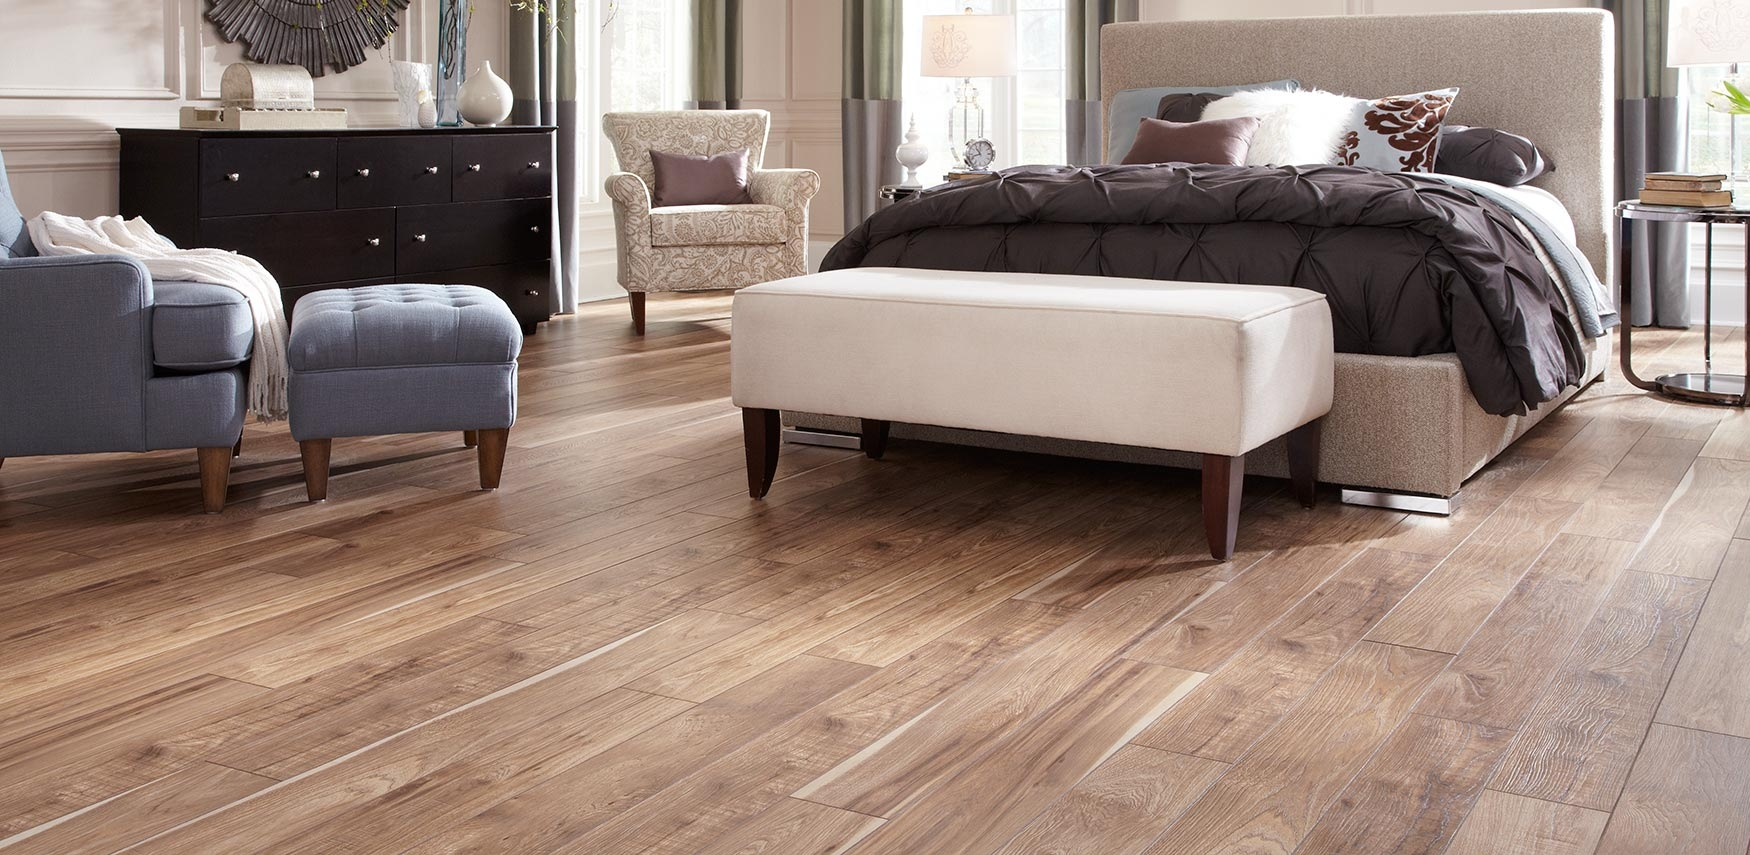 Faux Wood Laminate Flooring